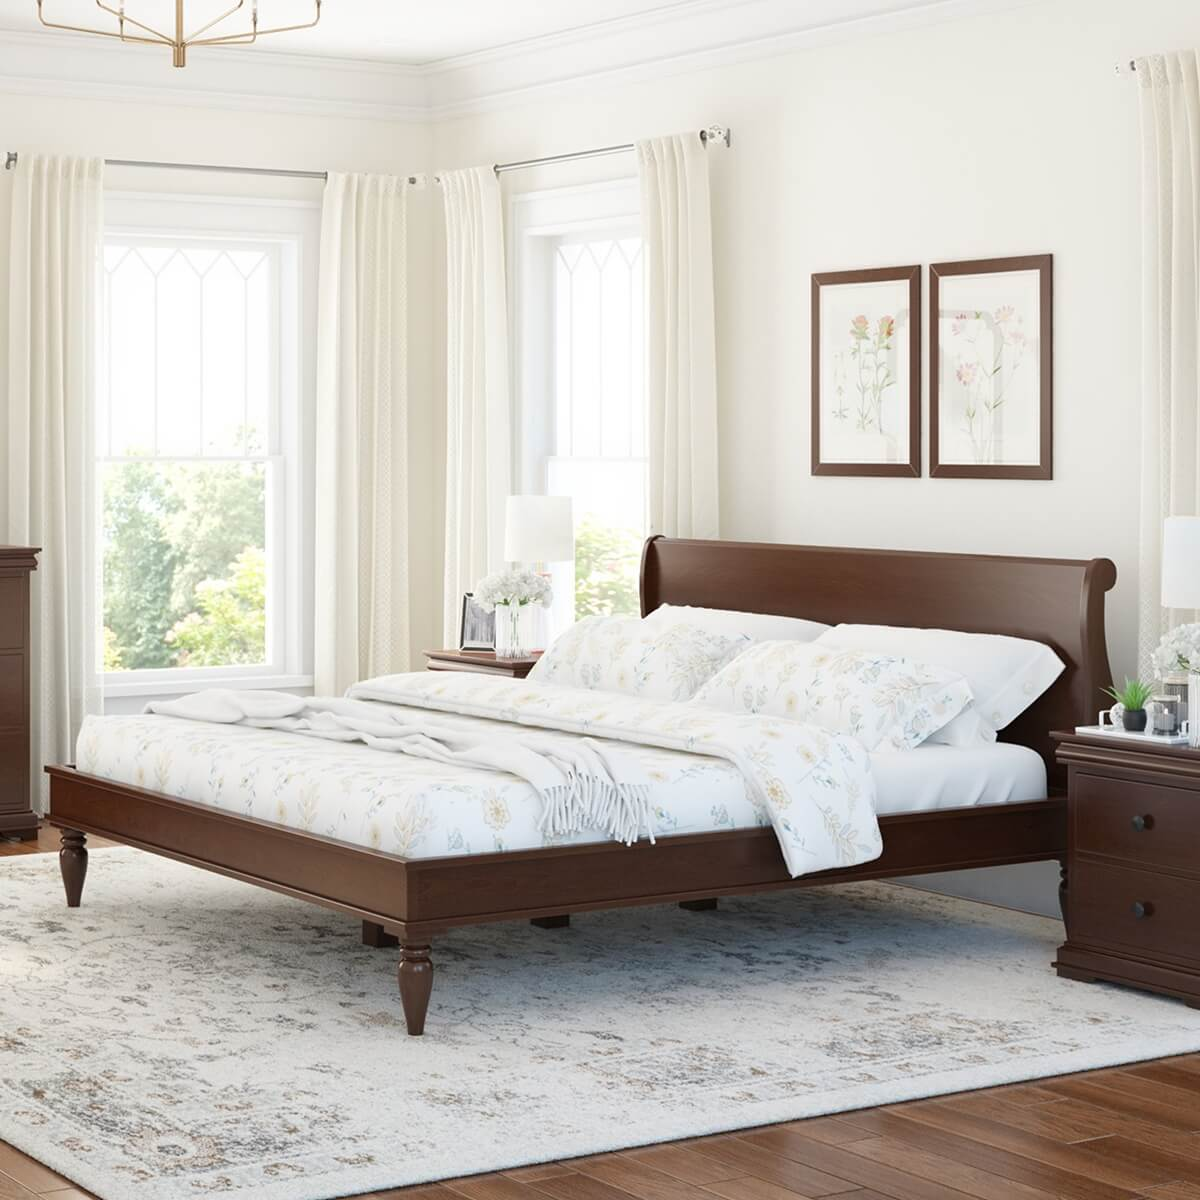 Classic Sleigh Style Handcrafted Mahogany Wood Low Platform Bed